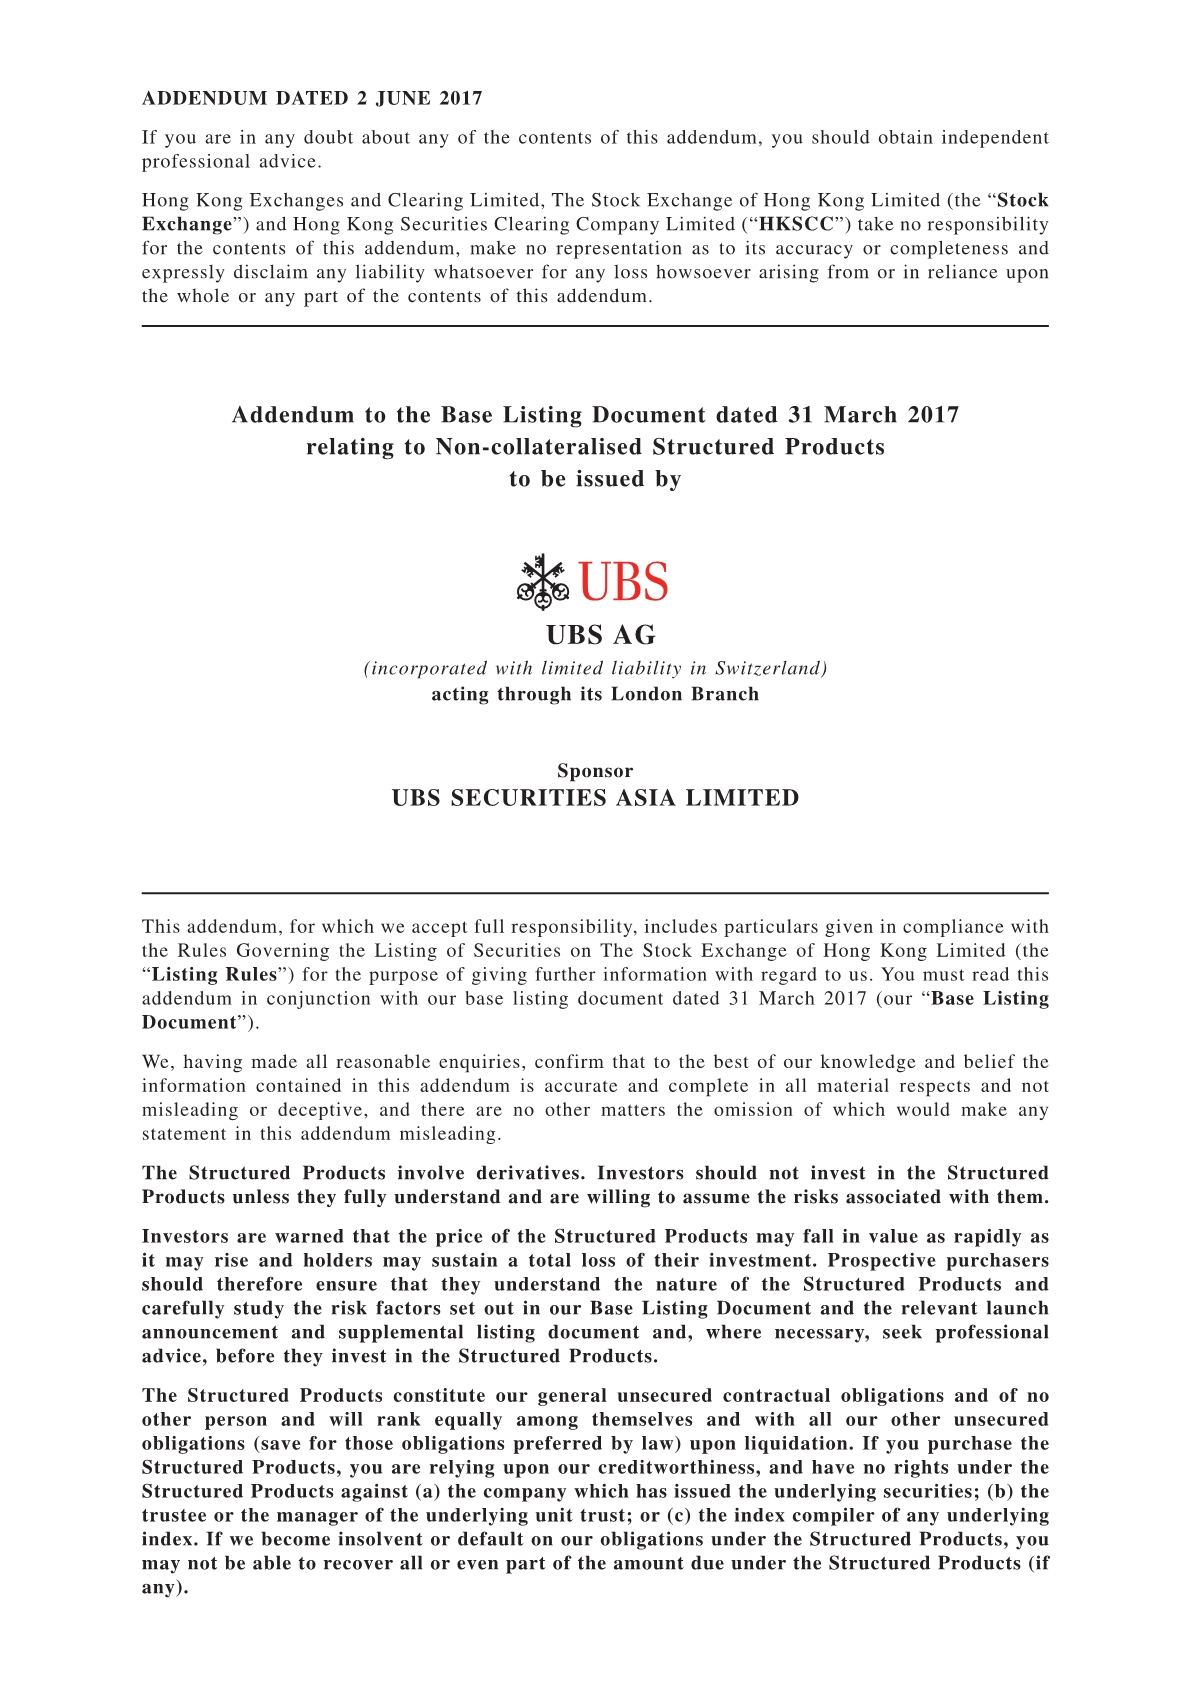 UBS AG – Addendum to the Base Listing Document